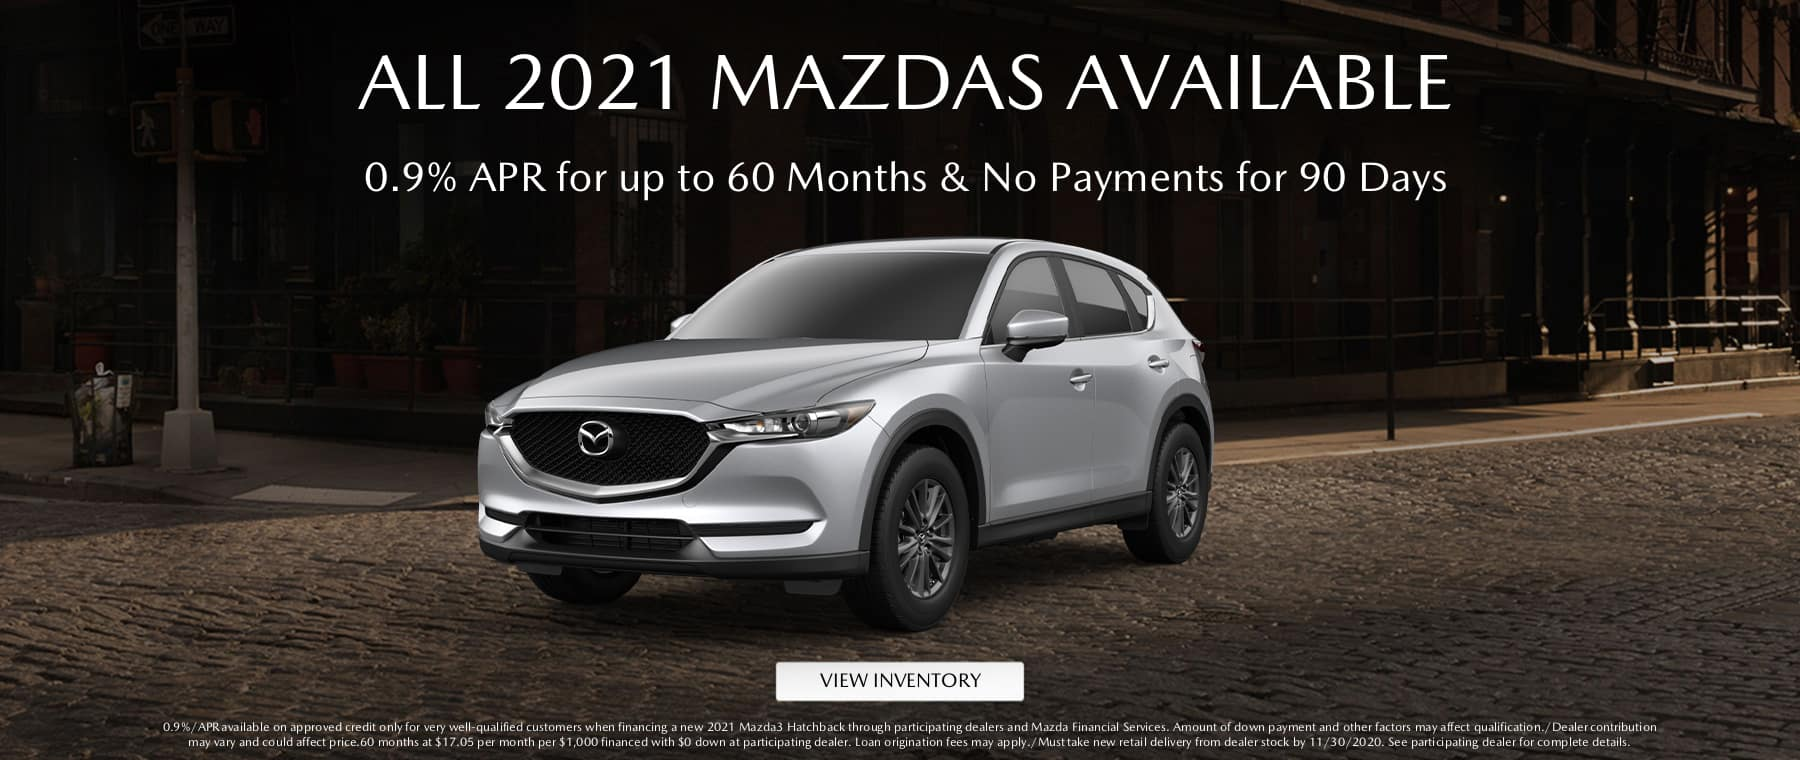 20-EAG-Mazda-Template-2021_Vehicles